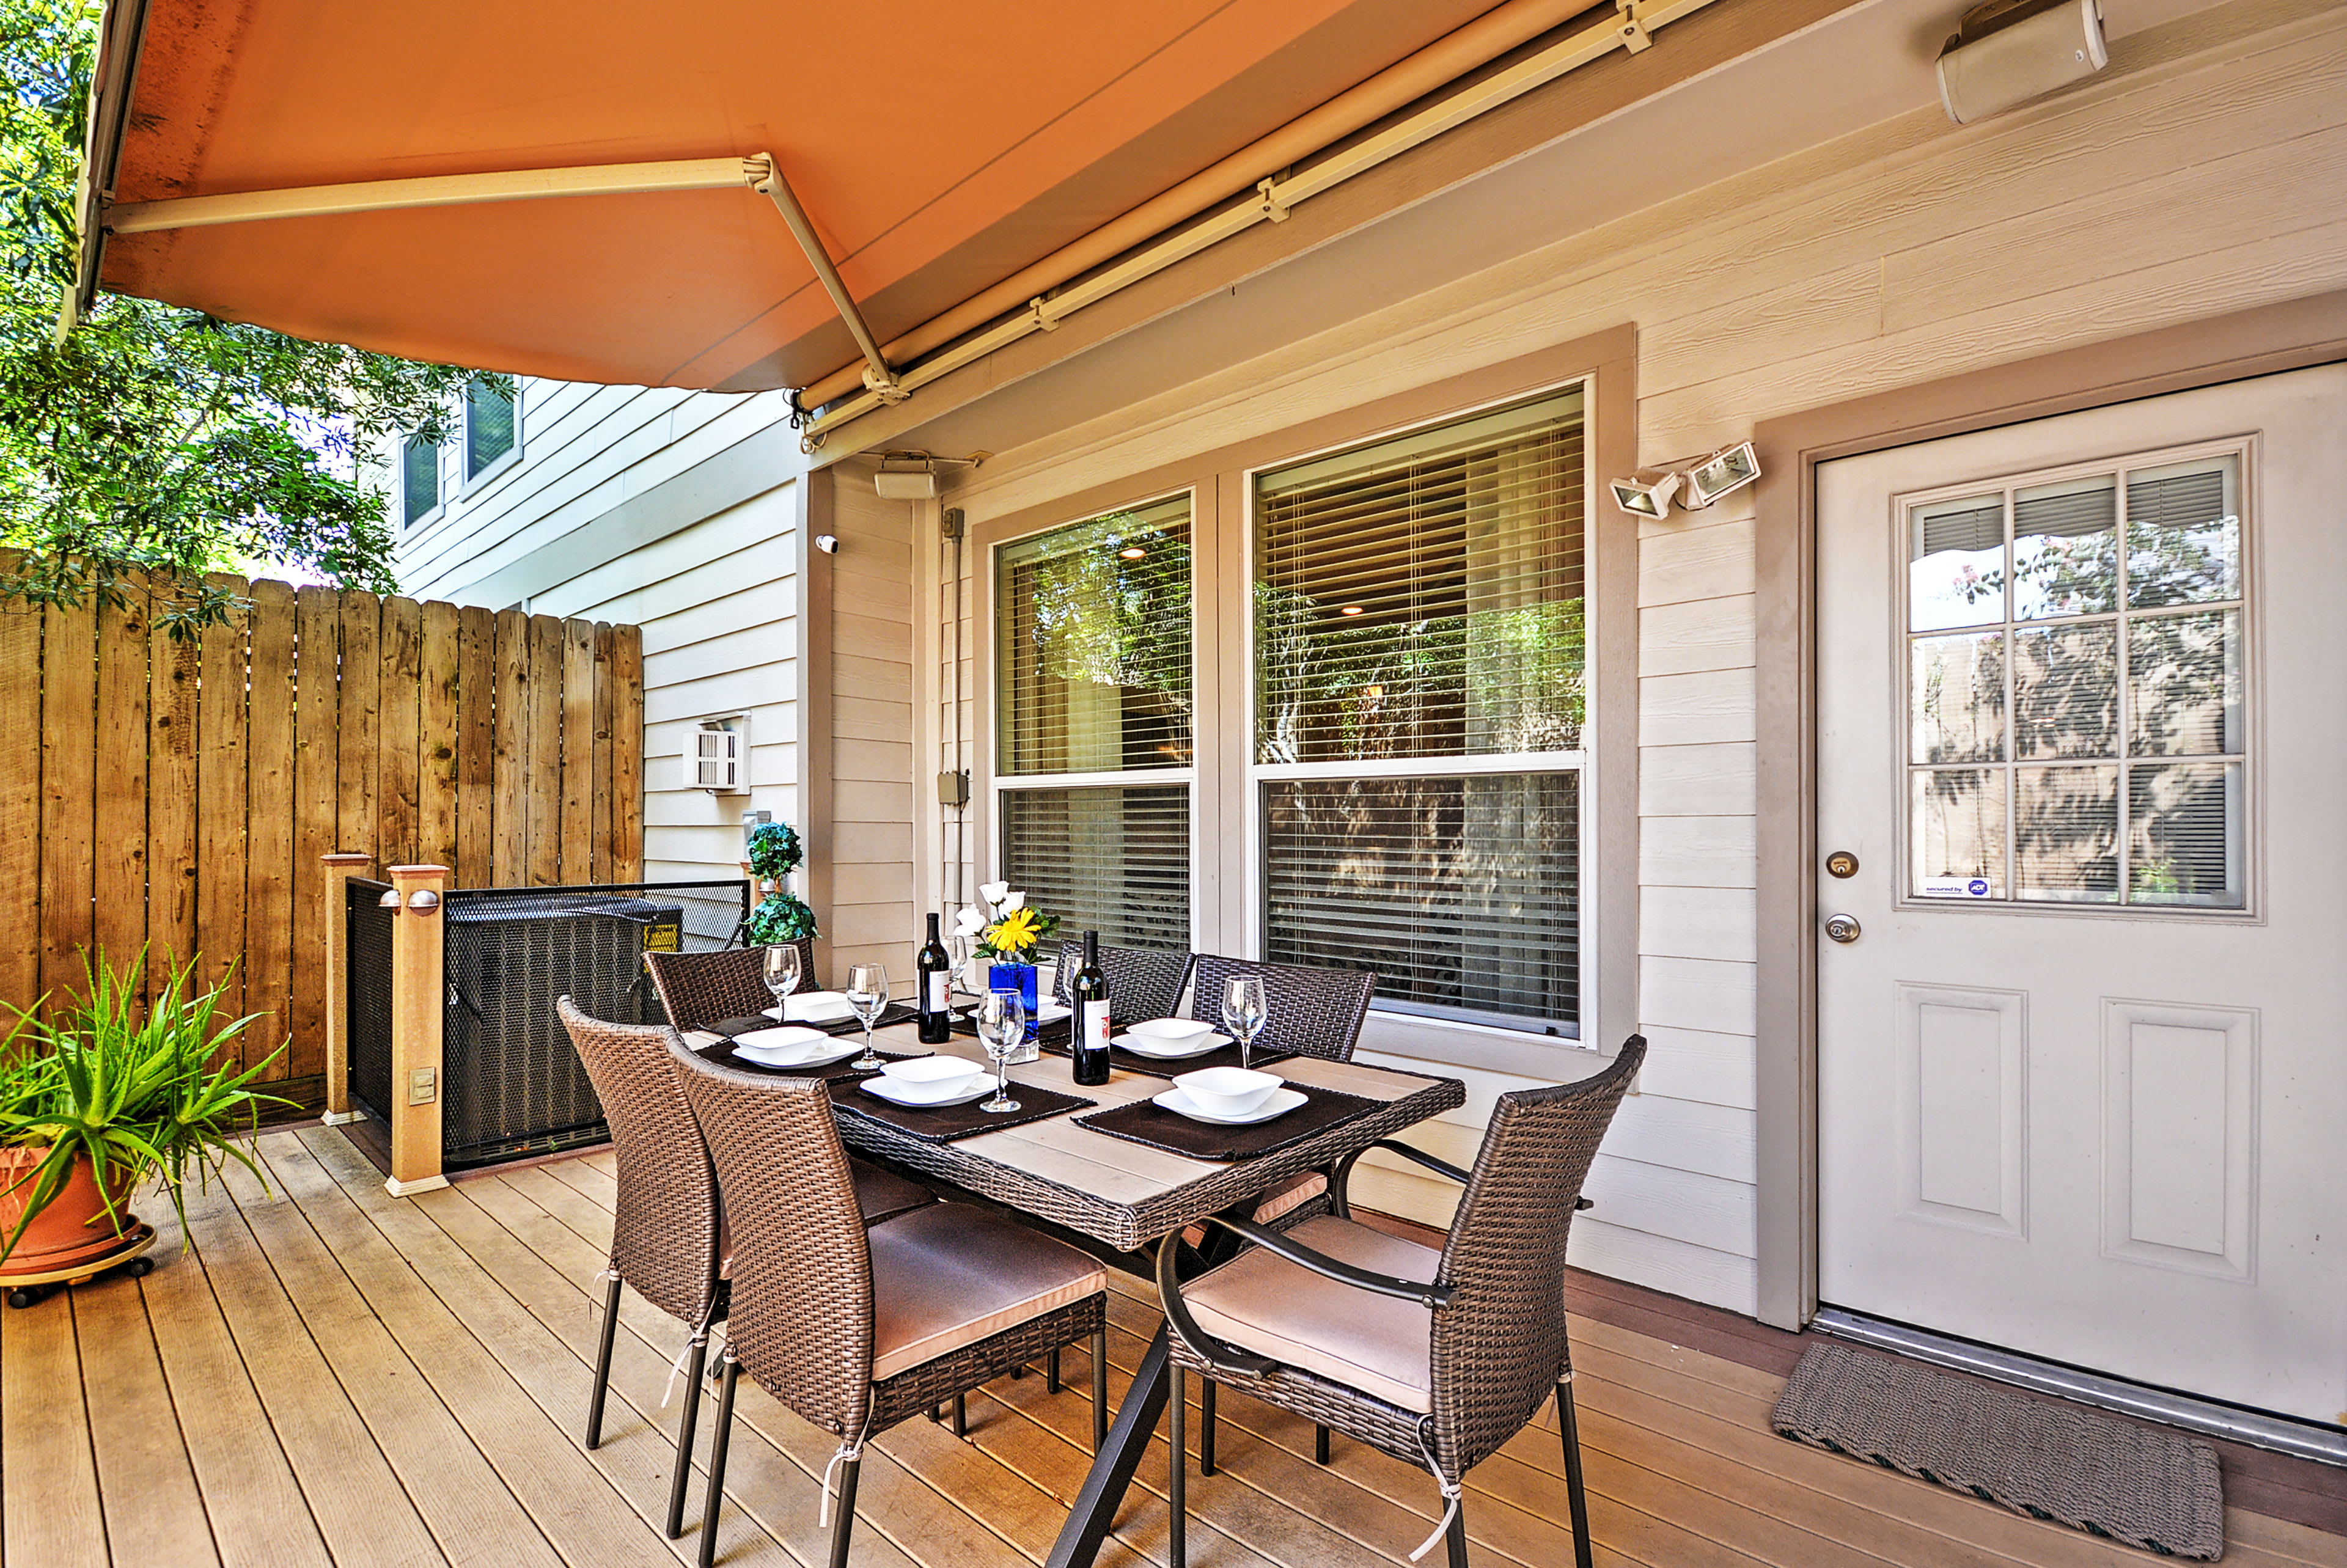 In addition to the spacious interior, there is also a great outdoor space!